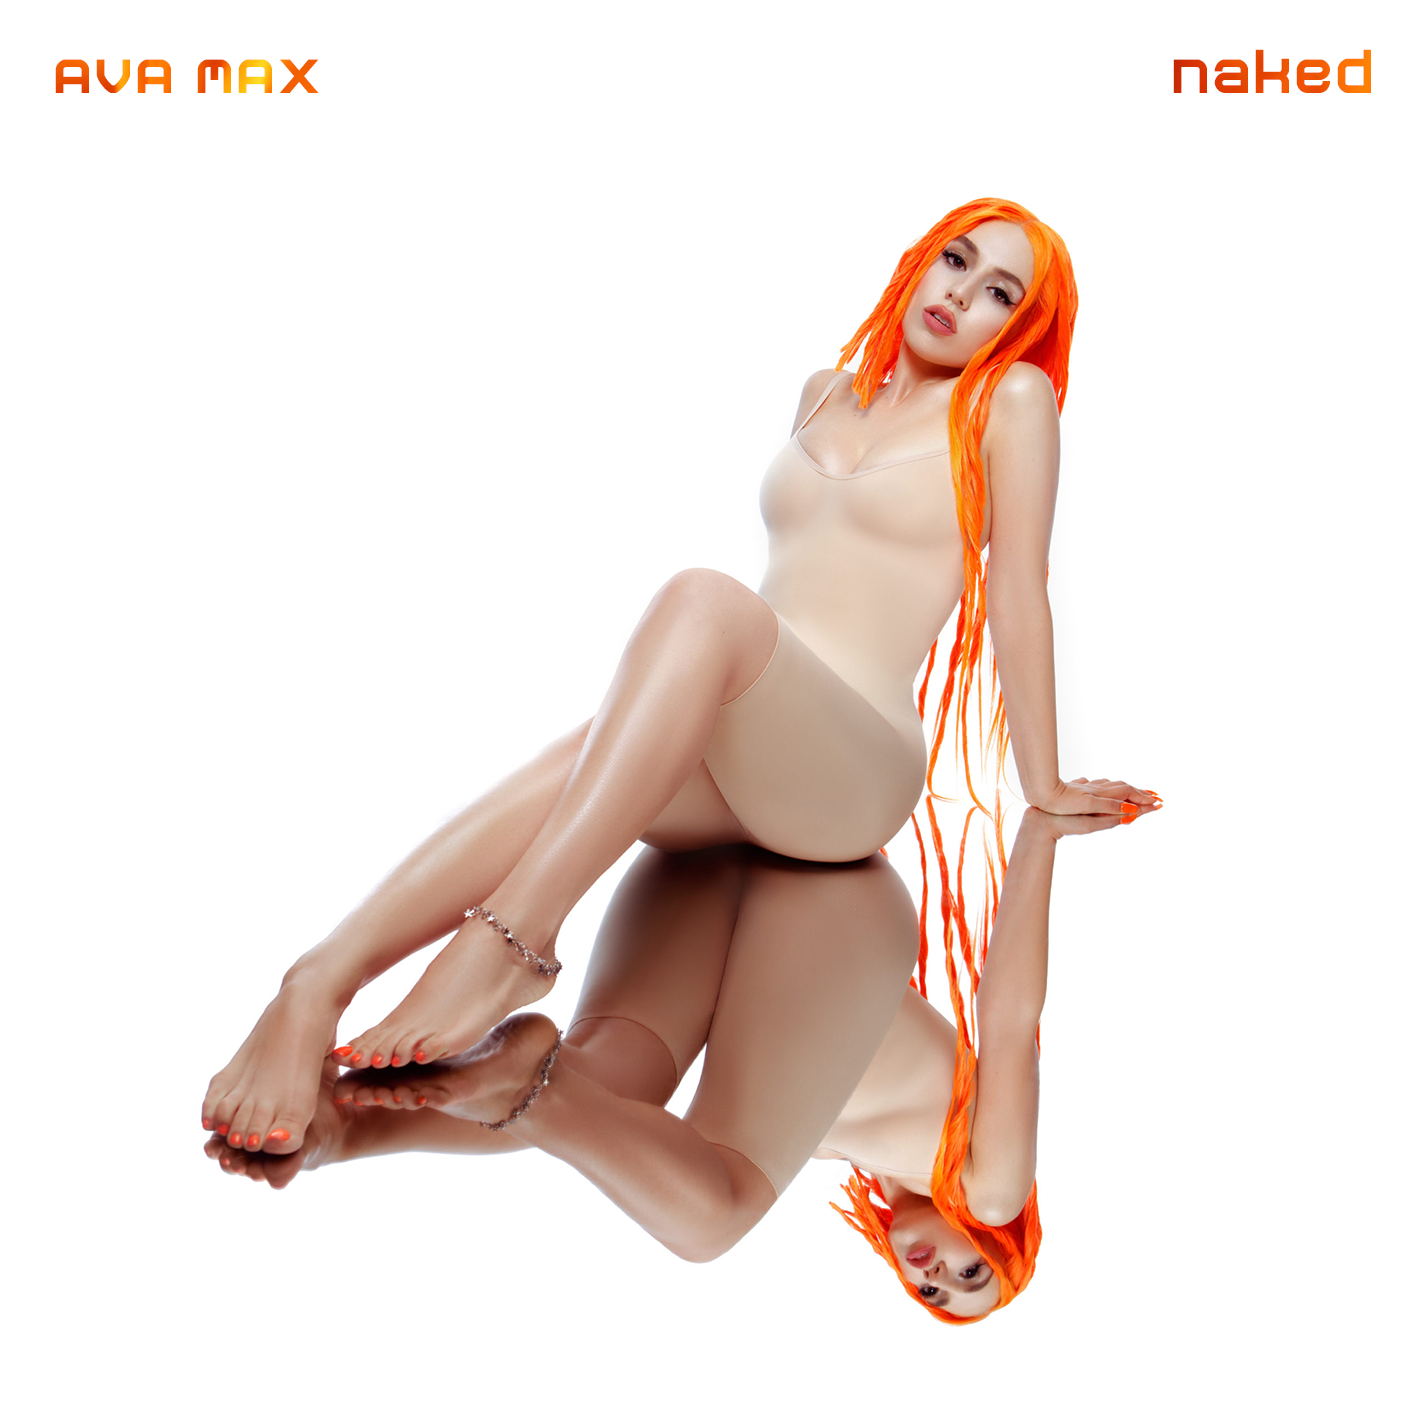 MOONCHILD-SERIES-ava-max-naked.png